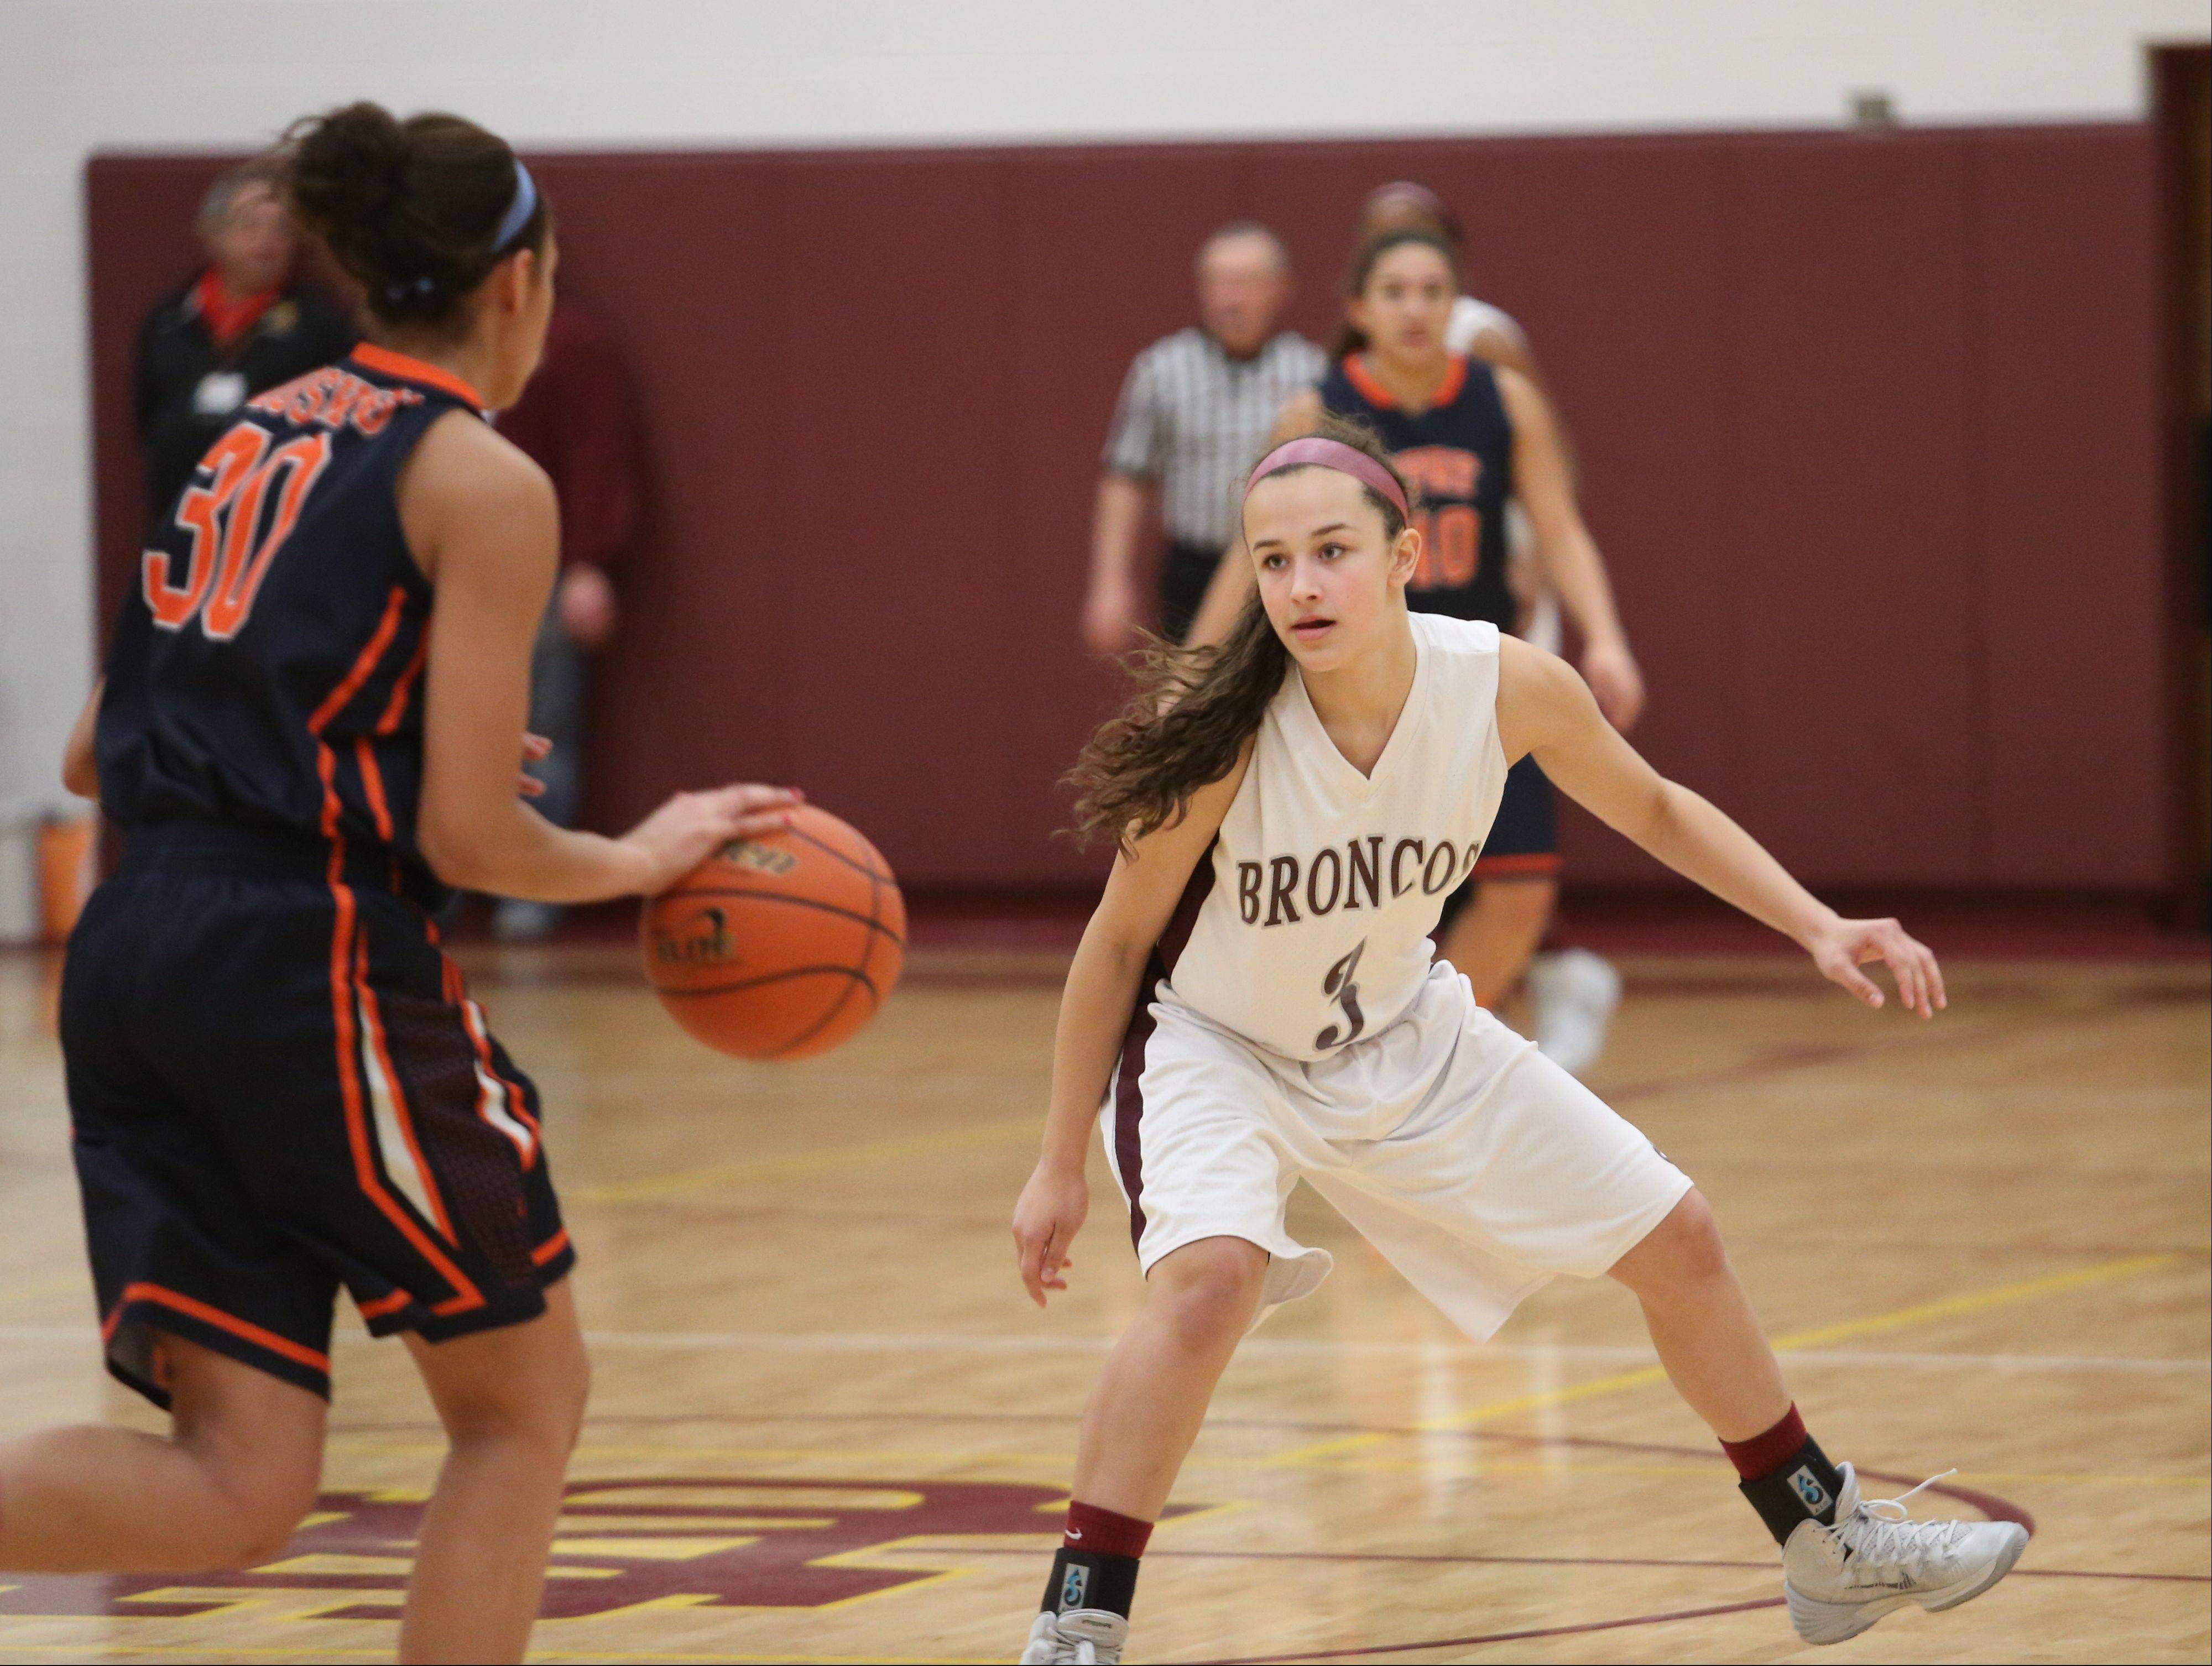 Images: Montini vs. Oak Park River Forest girls basketball